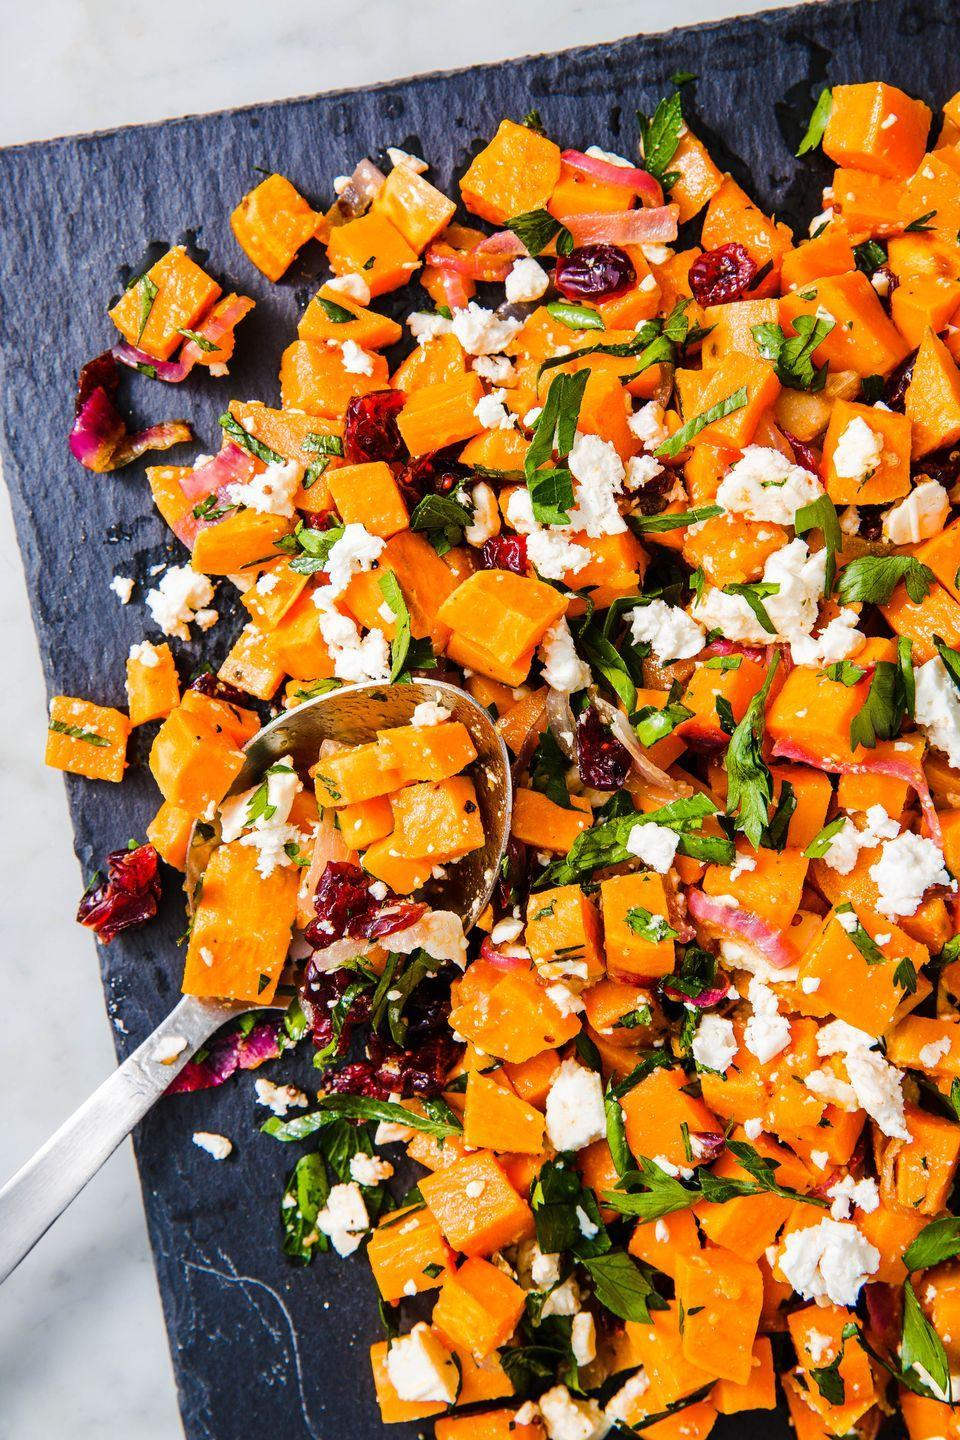 "<p>We love this salad warm, straight from the oven.</p><p>Get the recipe from <a href=""https://www.delish.com/cooking/recipe-ideas/a23362341/sweet-potato-salad-recipe/"" rel=""nofollow noopener"" target=""_blank"" data-ylk=""slk:Delish"" class=""link rapid-noclick-resp"">Delish</a>.</p>"